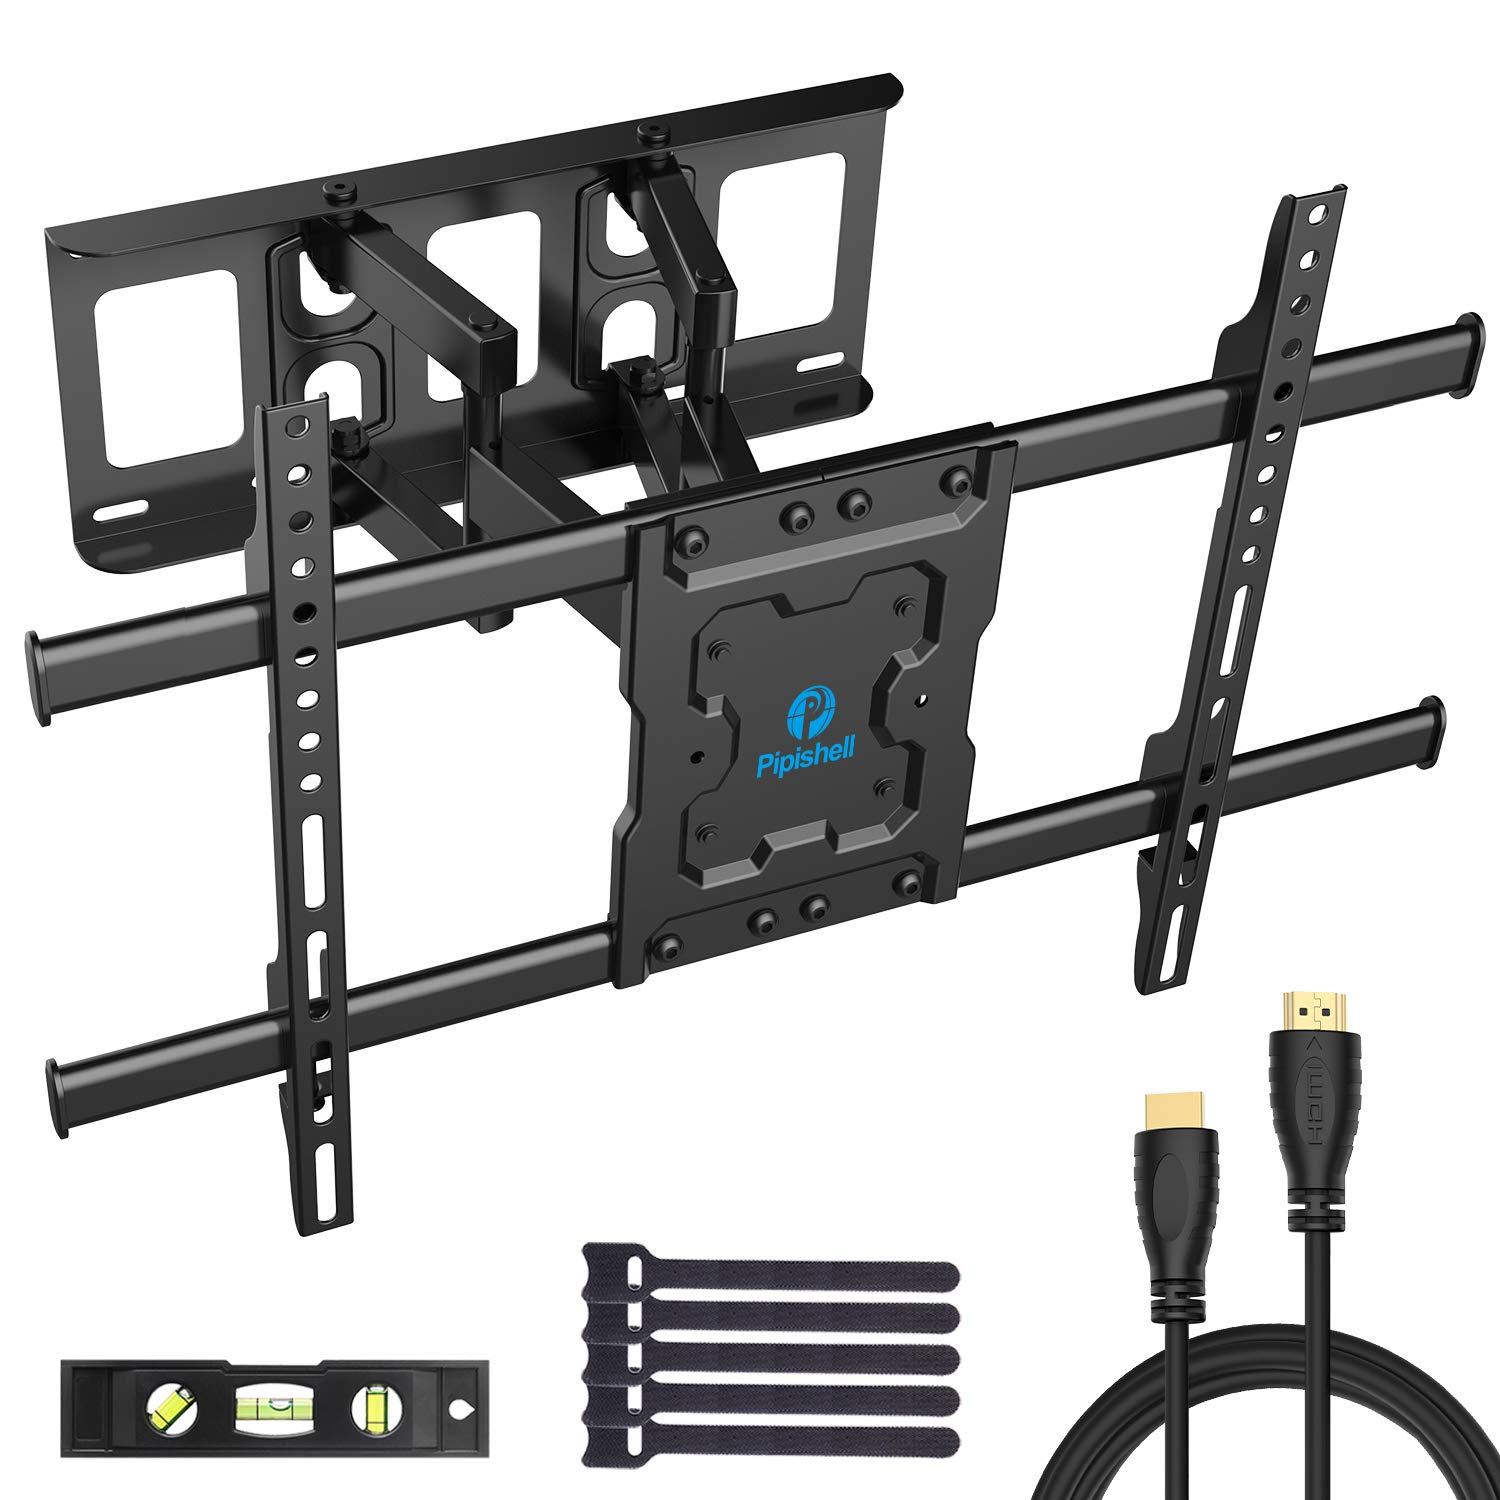 Full Motion TV Wall Mount Bracket Dual Articulating Arms Swivels Tilts Rotation for Most 37-70 Inch LED, LCD, OLED Flat&Curved TVs, Holds up to 132lbs, Max VESA 600x400mm by Pipishell by Pipishell